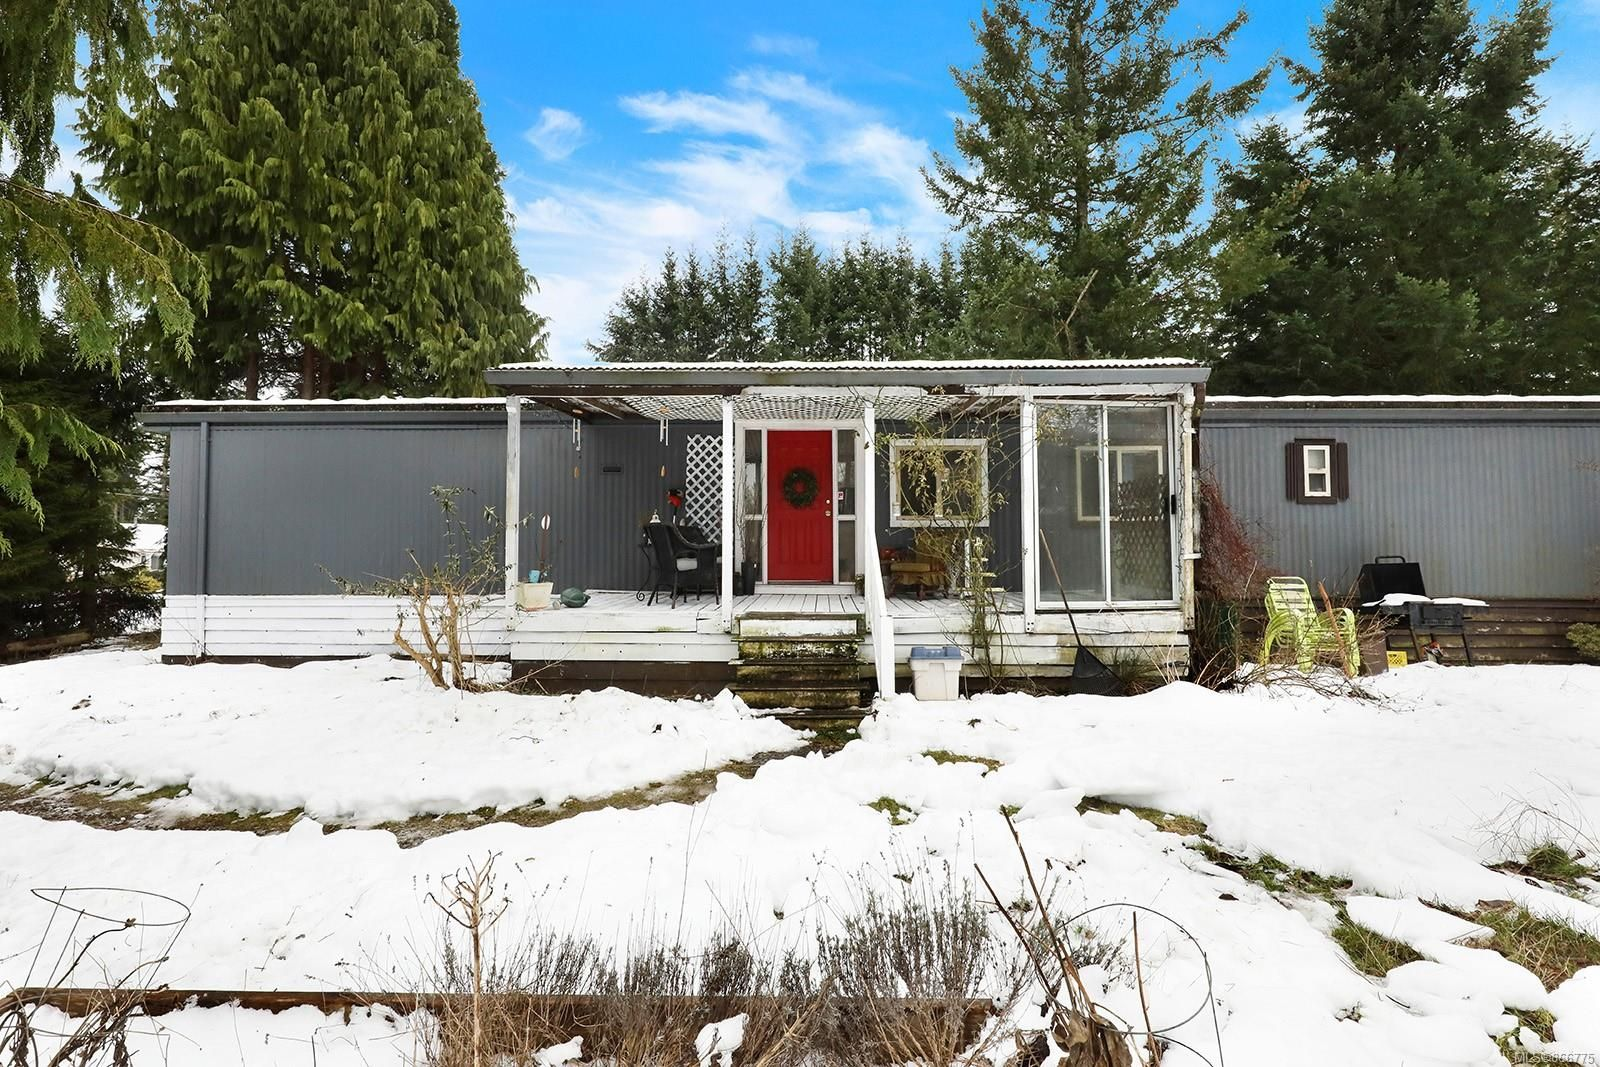 Main Photo: 5933 Mosley Rd in : CV Courtenay North House for sale (Comox Valley)  : MLS®# 866775